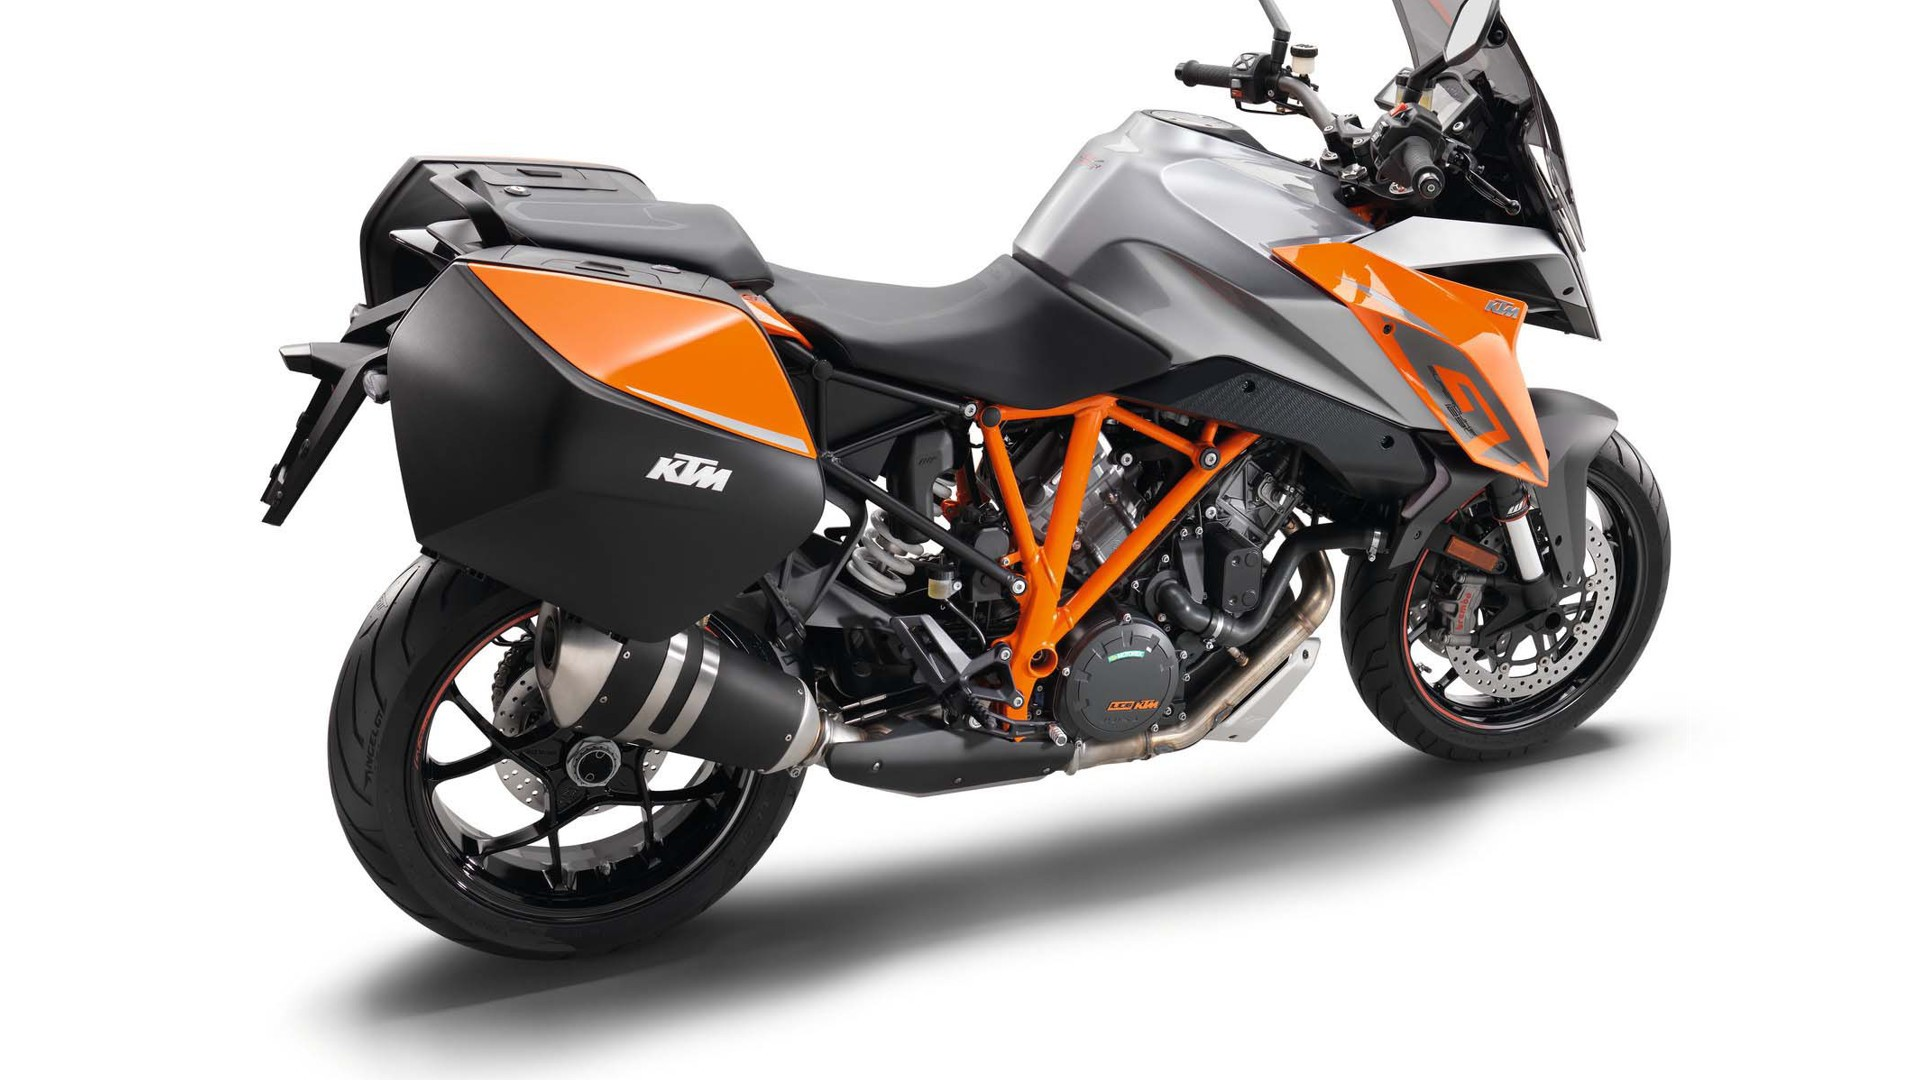 one ktm 1290 super duke gt photo we didn't want to see - autoevolution